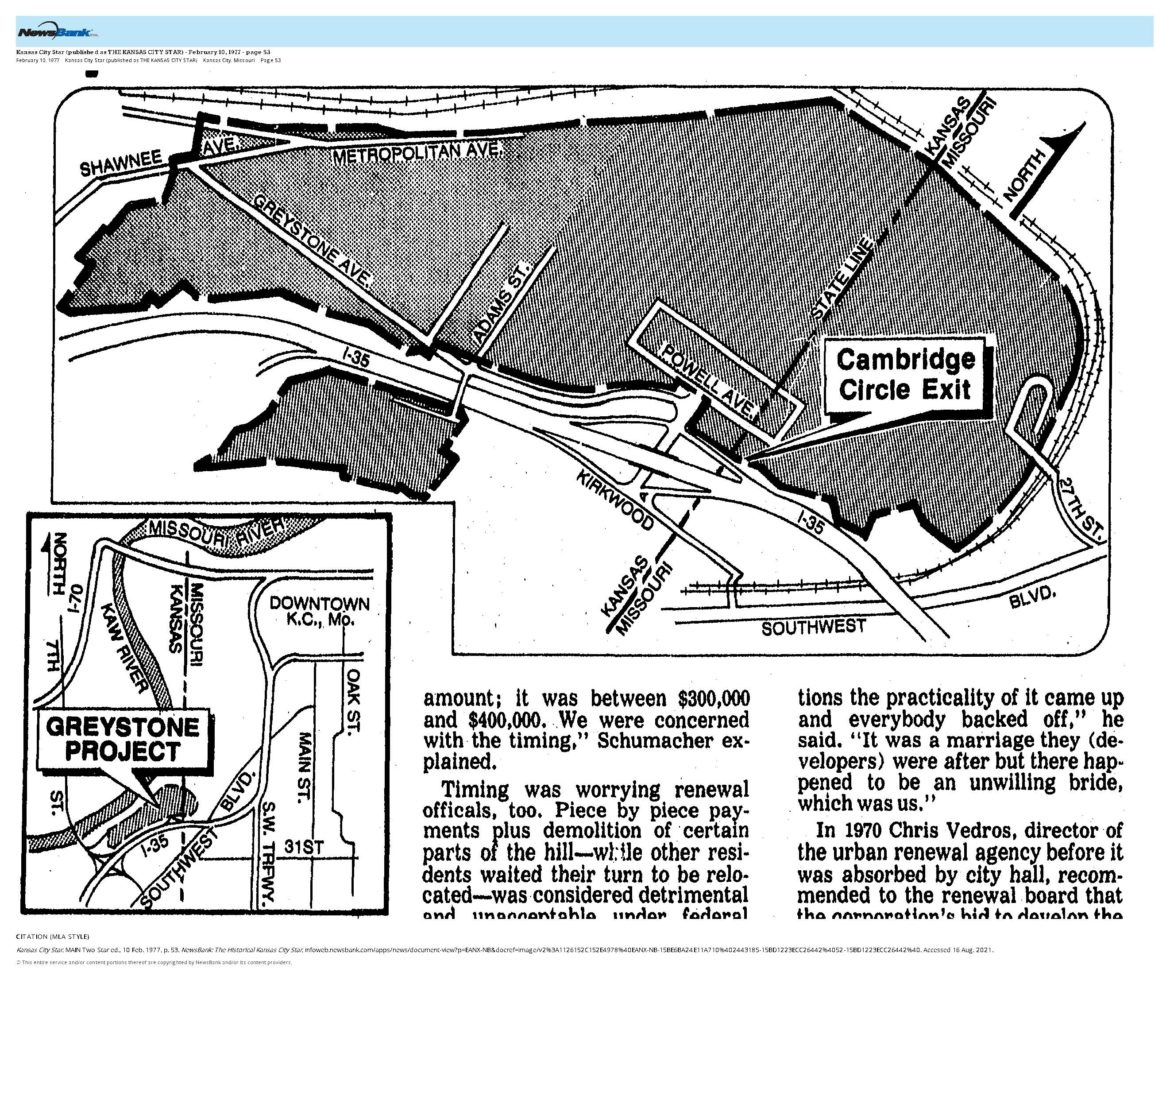 """An article from the Kansas City Star in 1977 shows the proposed map for the """"Greystone Heights Project"""" developed by Dean's Fairmont Development Co. (Newsbank)"""